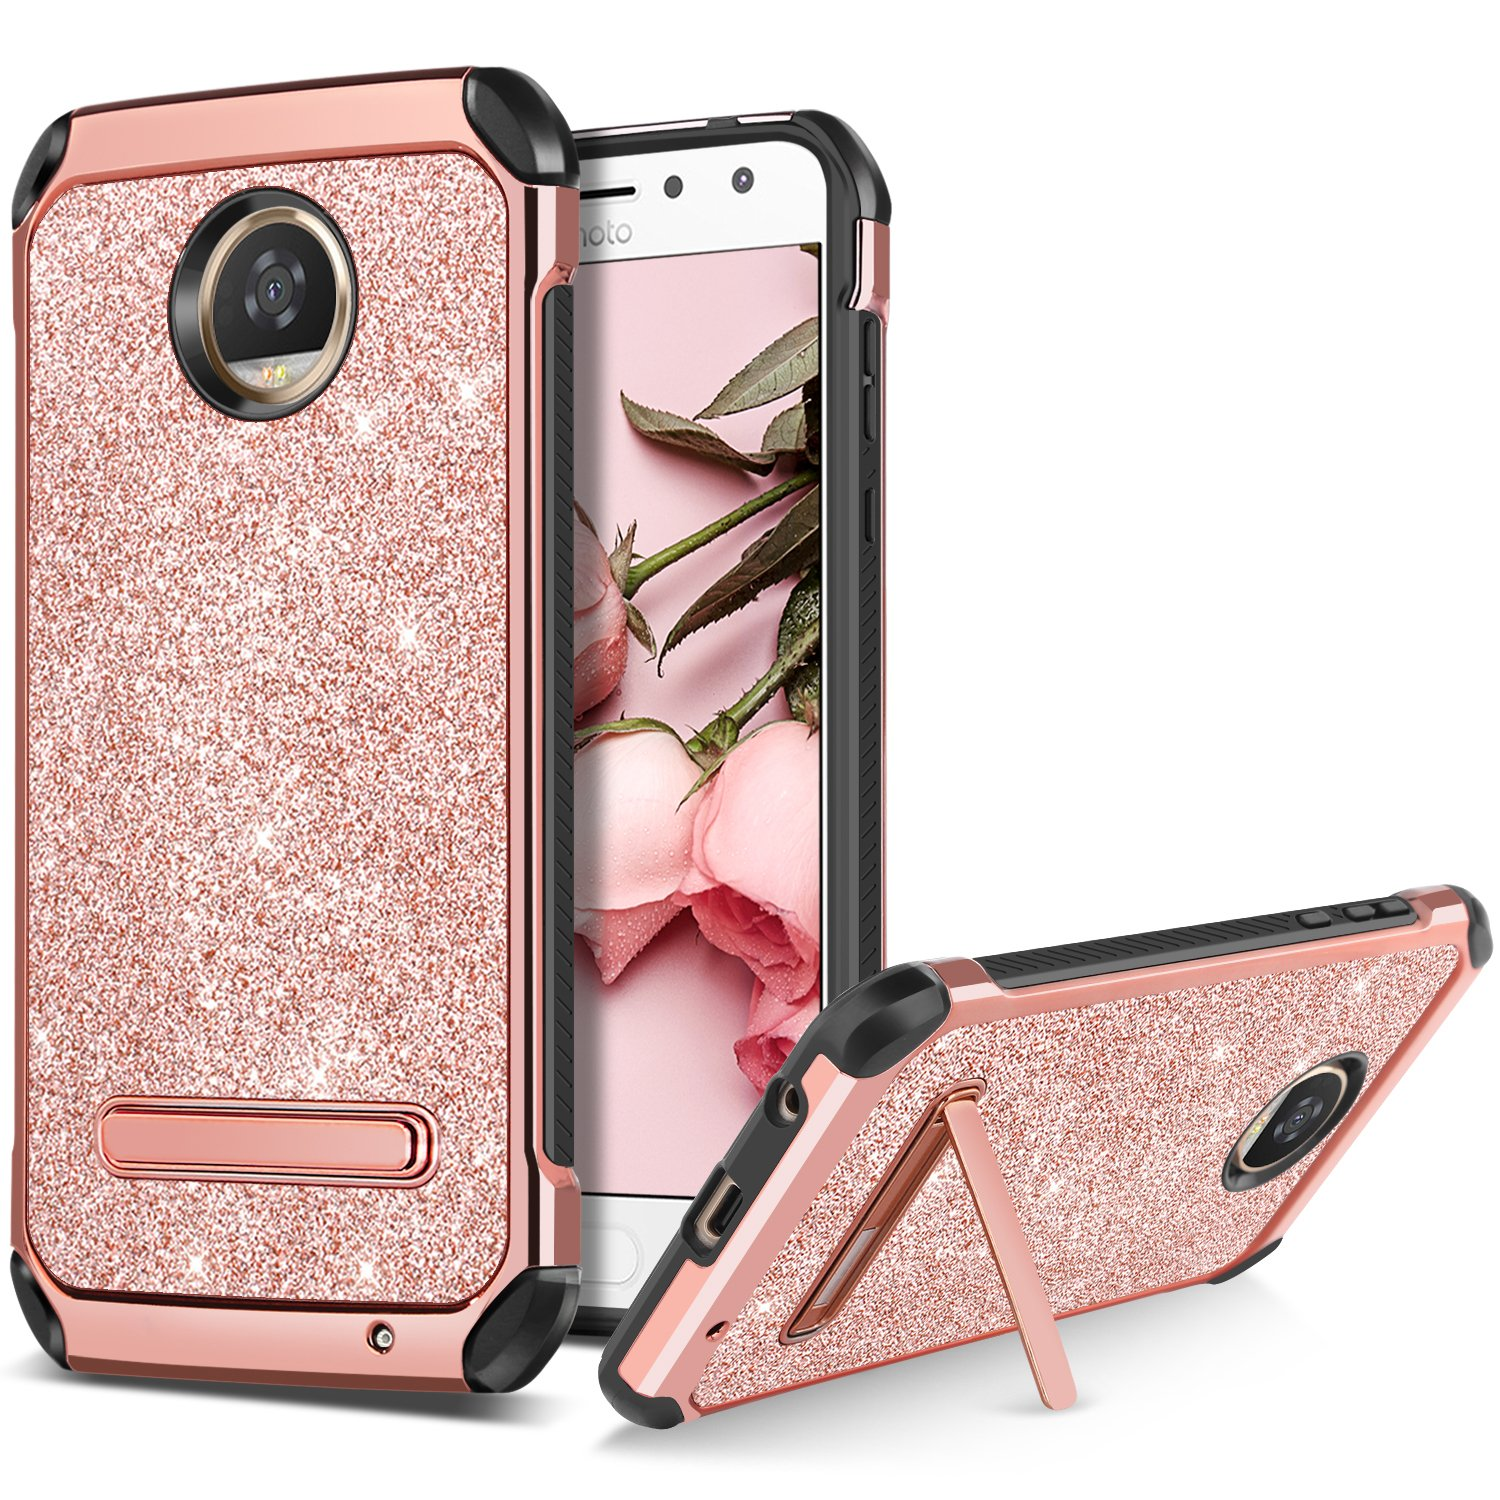 BENTOBEN Moto Z2 Play Case Kicckstand Slim Dual Layer Shockproof Soft TPU Bumper Hybrid Hard PC Cover with Luxury Glitter Faux Leather Rugged ...